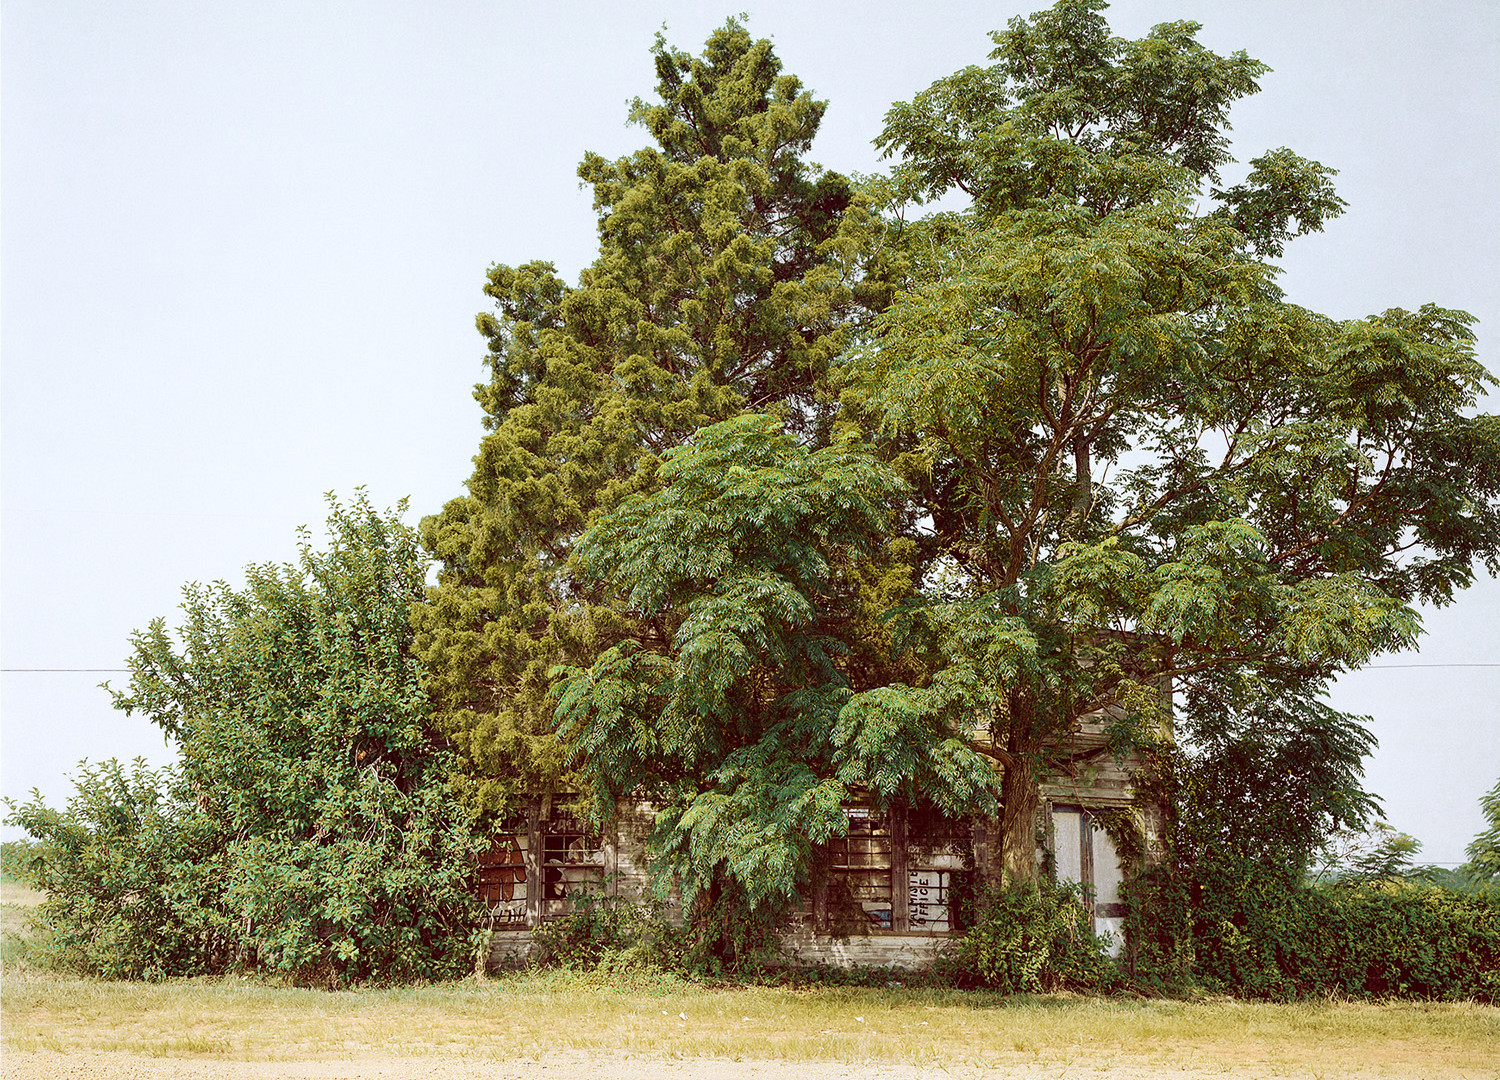 William Christenberry, Palmist Building (Summer), Havana Junction, Alabama, 1980